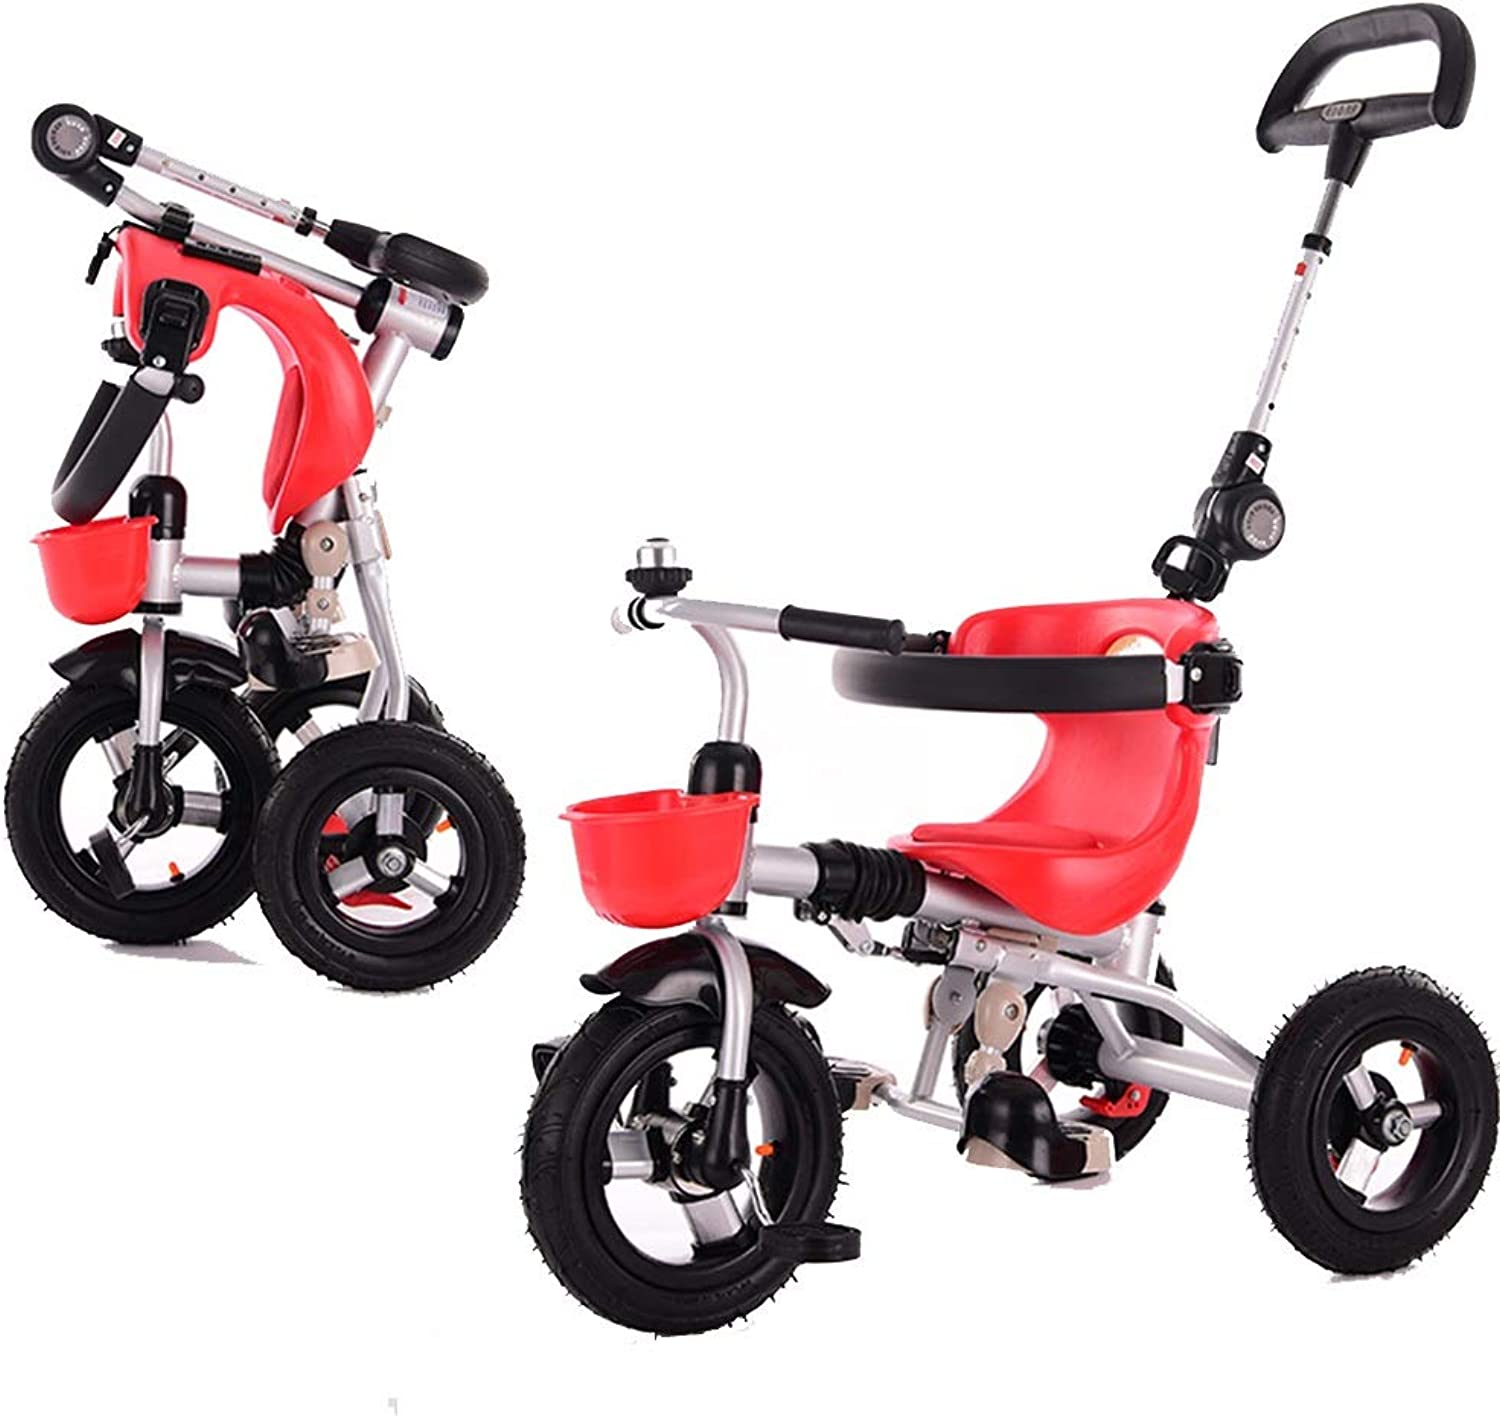 YUMEIGE Kids' Tricycles Kids Tricycle Foldable 1-5Years Old Birthday Gift Baby Tricycle Titanium Empty Wheel with Push Handle (Load Weight 40kg) Available